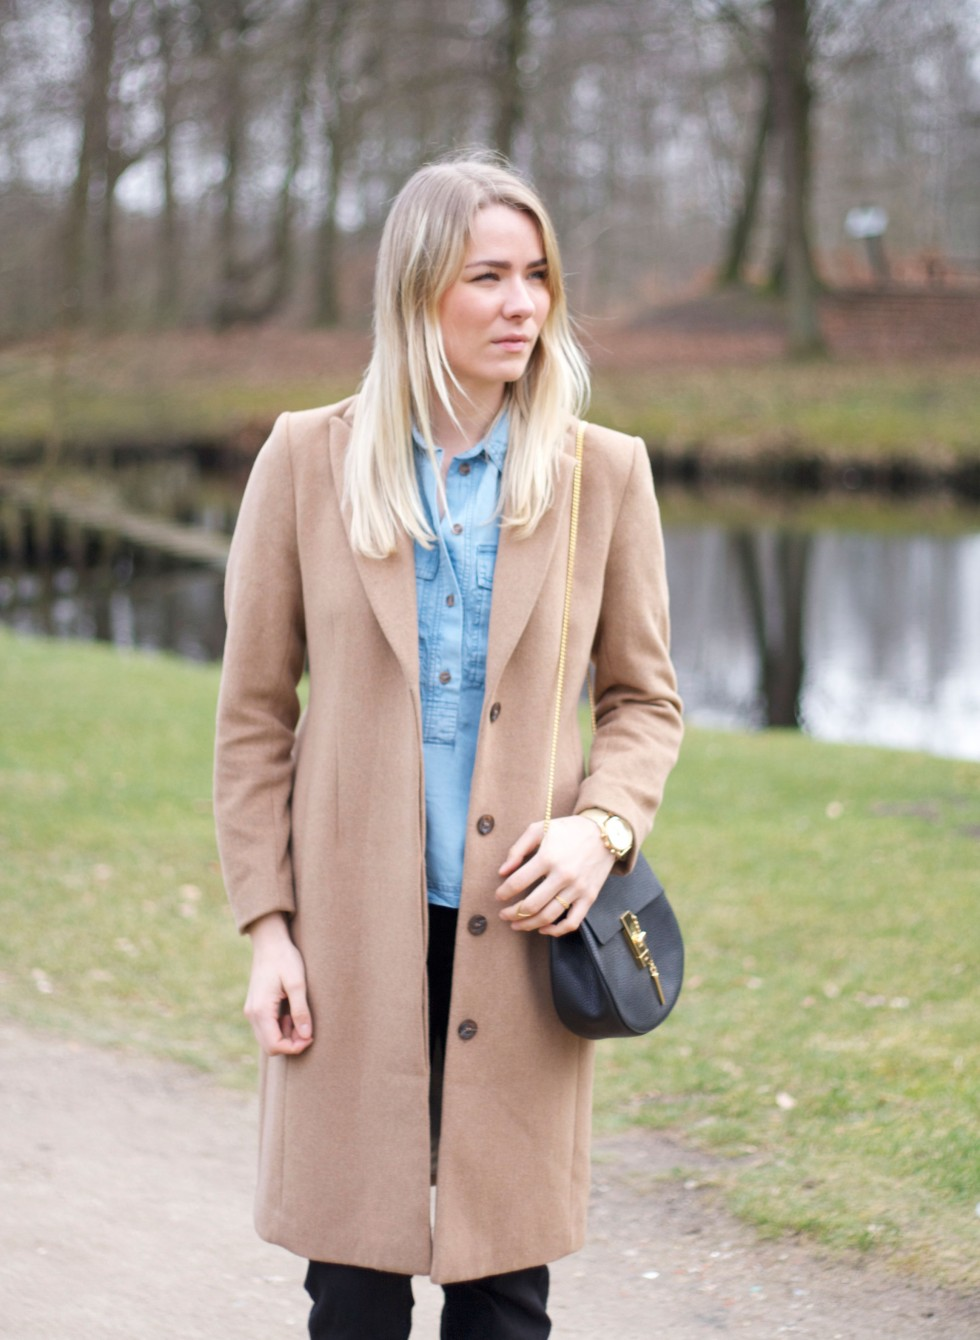 camel-coat-outfit-fashion-denim-flare